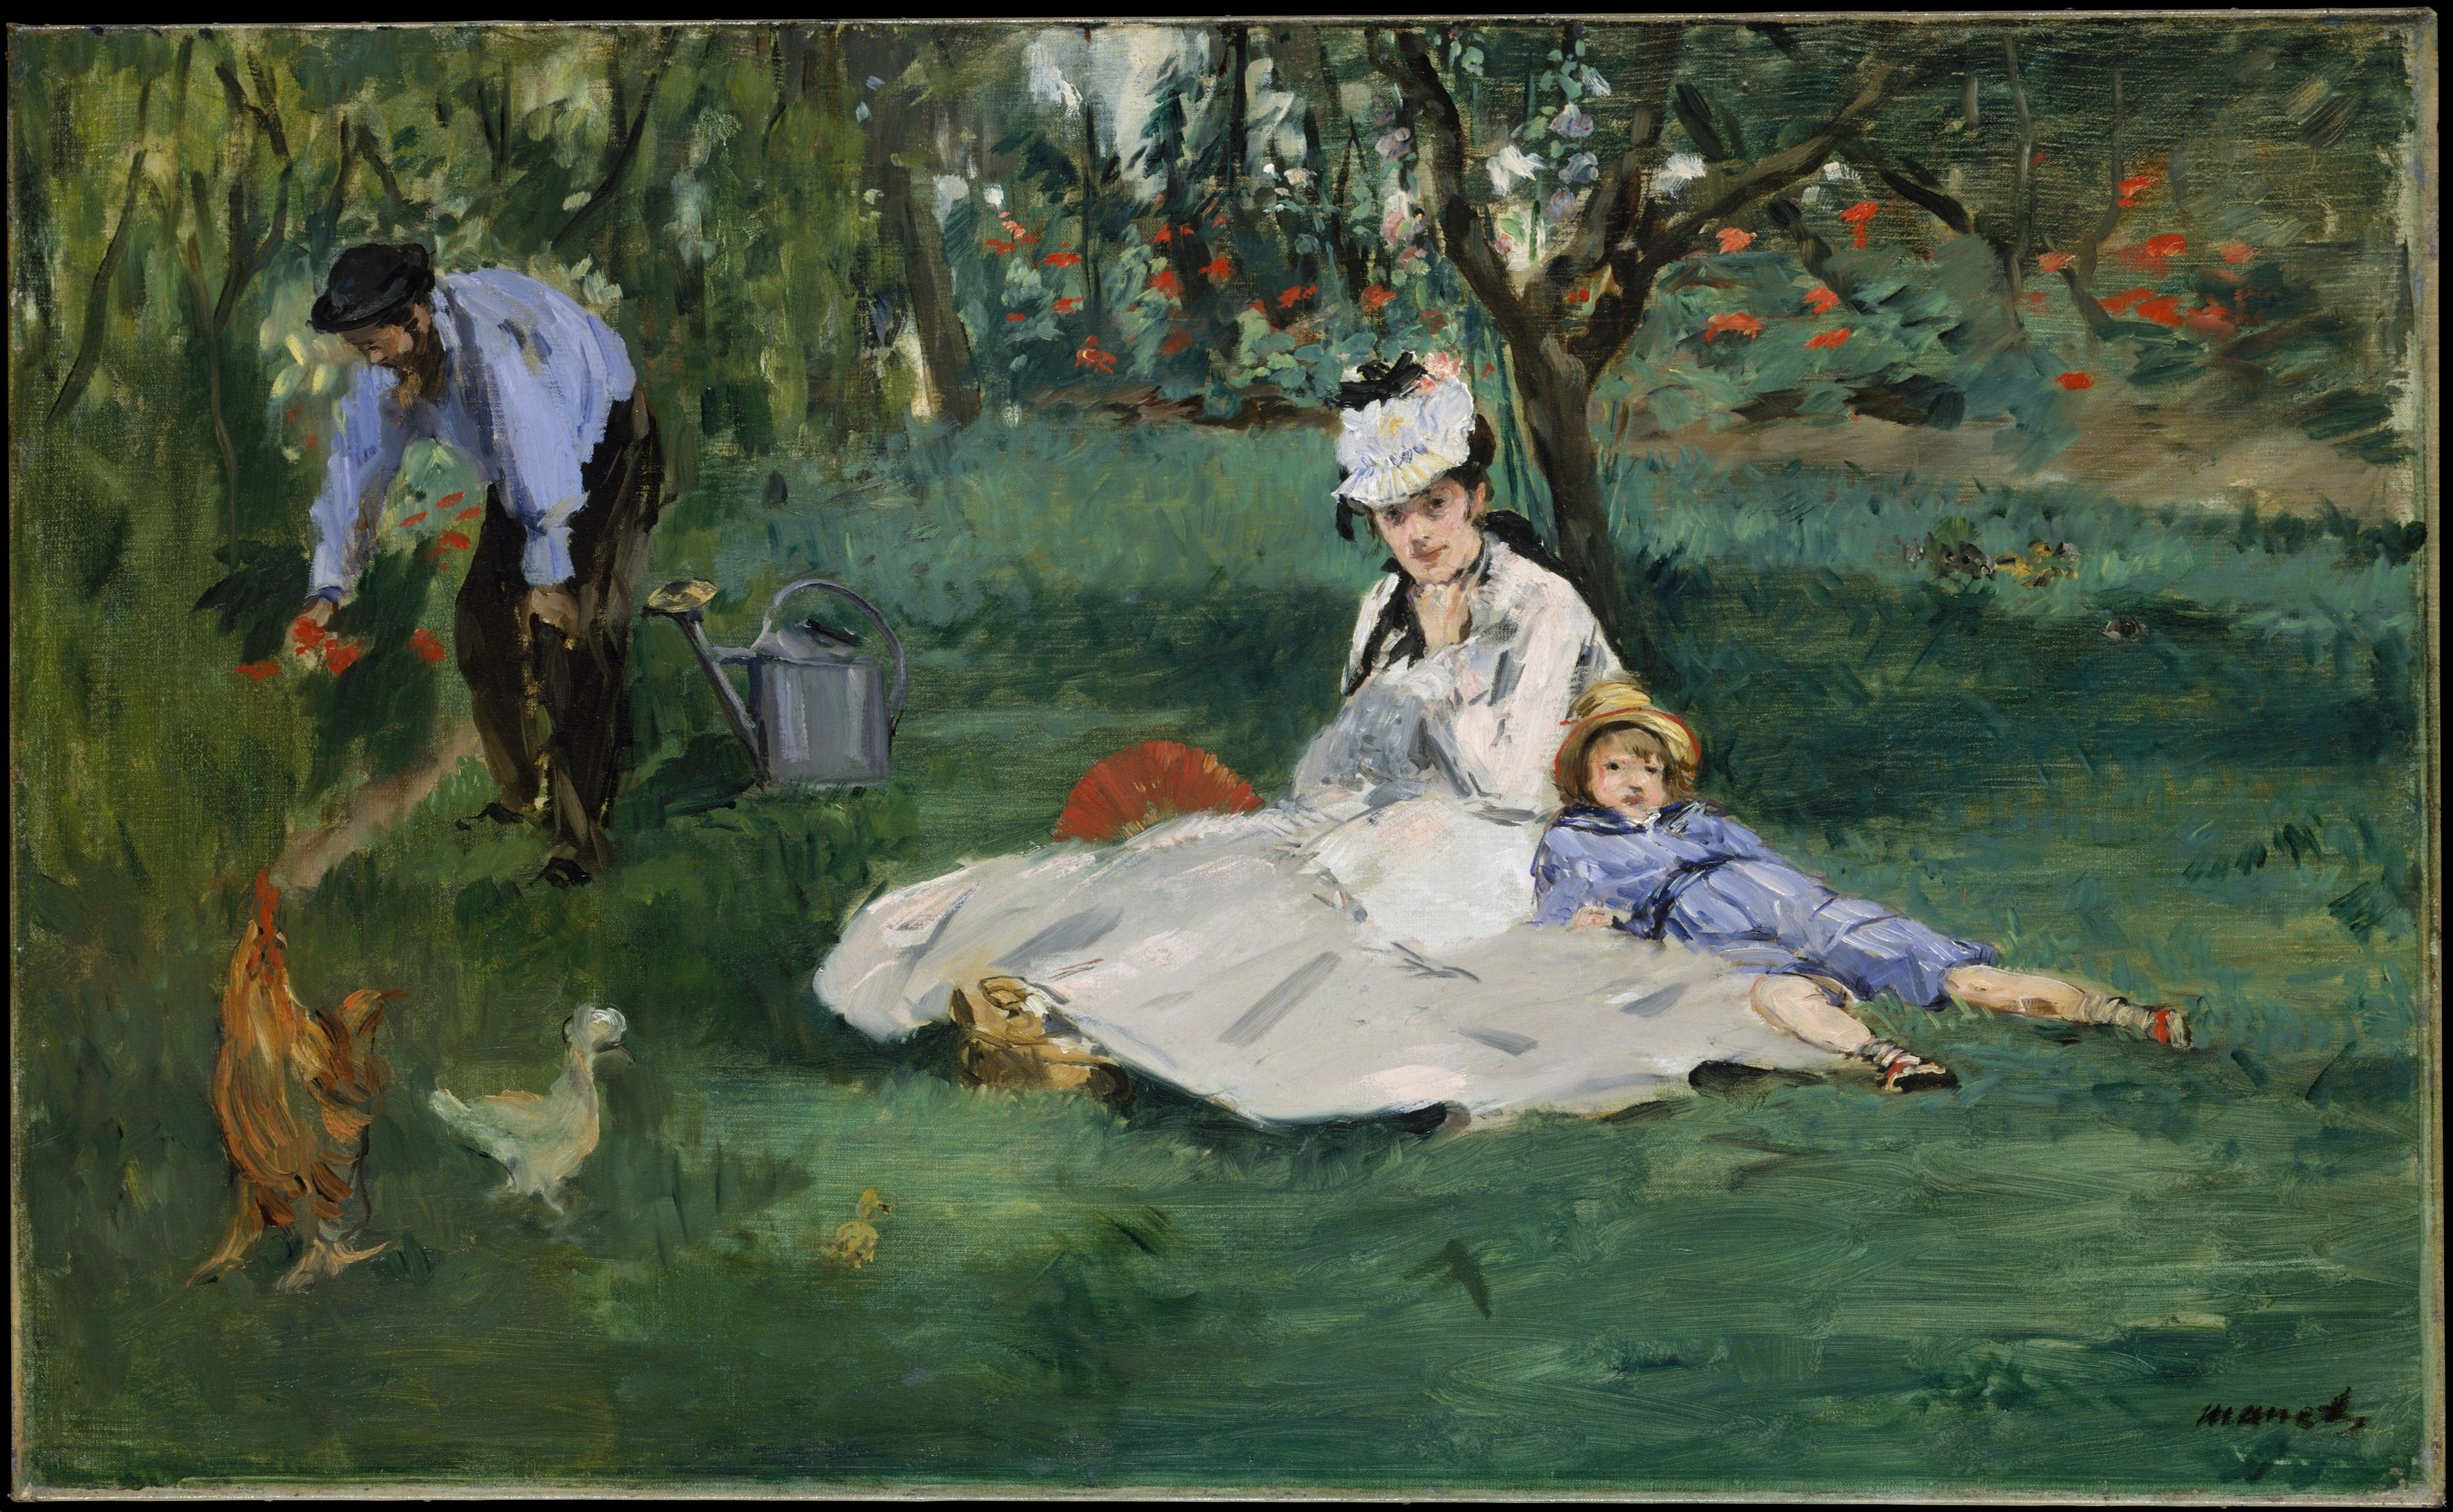 Jeanne by Edouard Manet by Claude Monet Giclee Fine ArtPrint Repro on Canvas